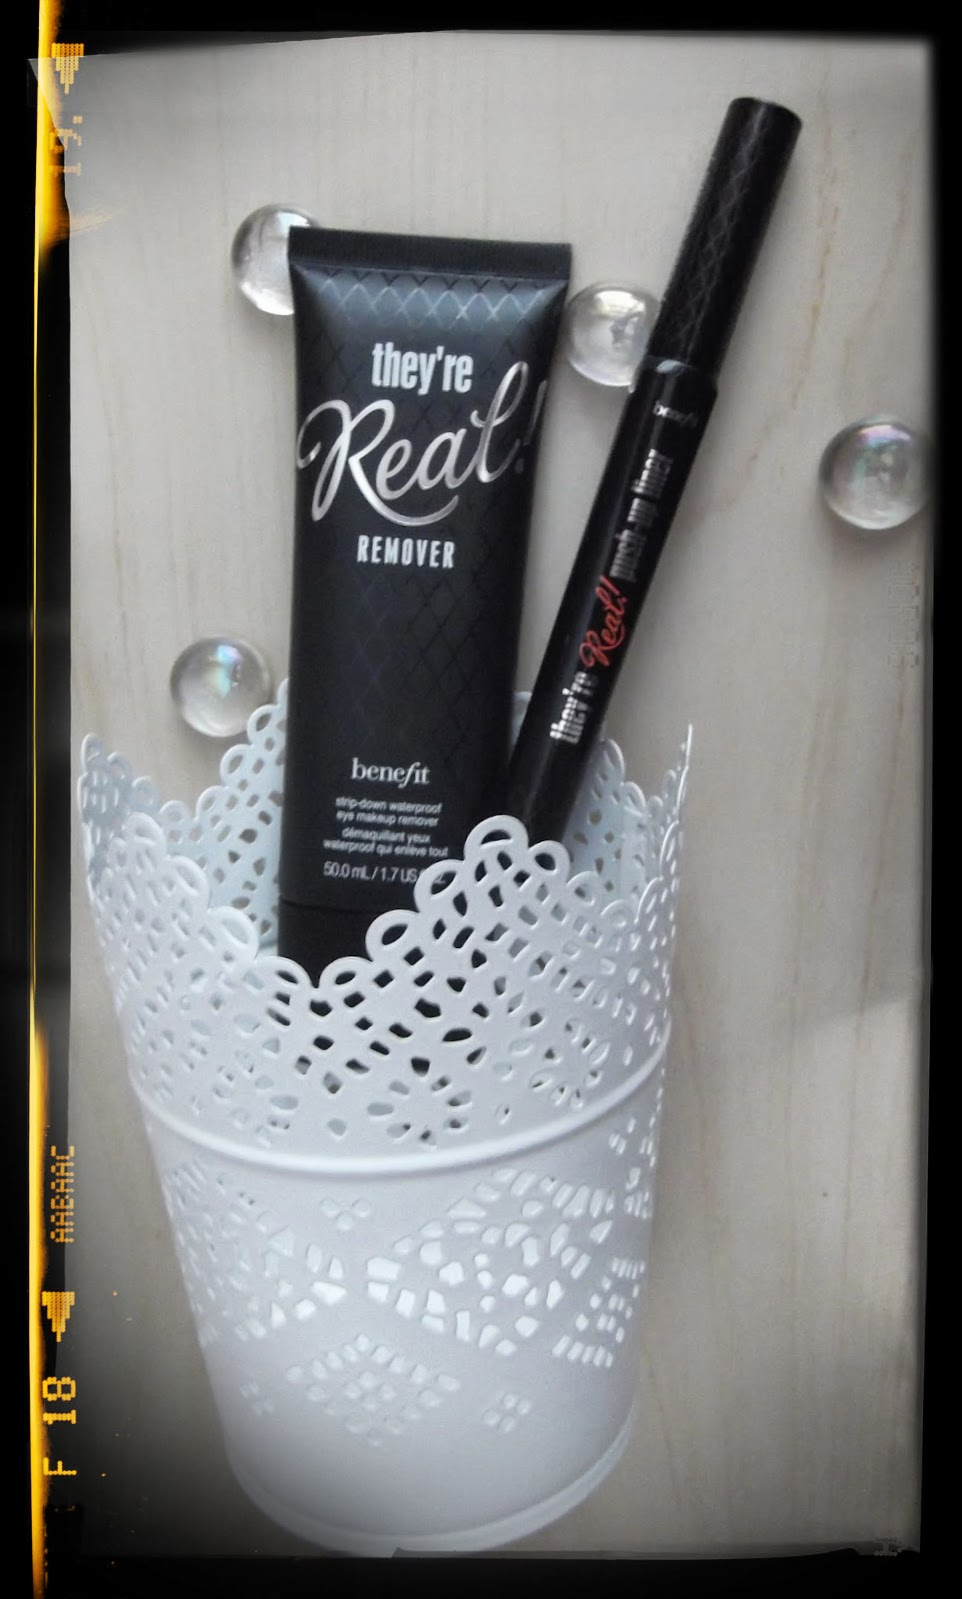 Benefit They're REAL Push-Up Gel Eye-liner pen remover review